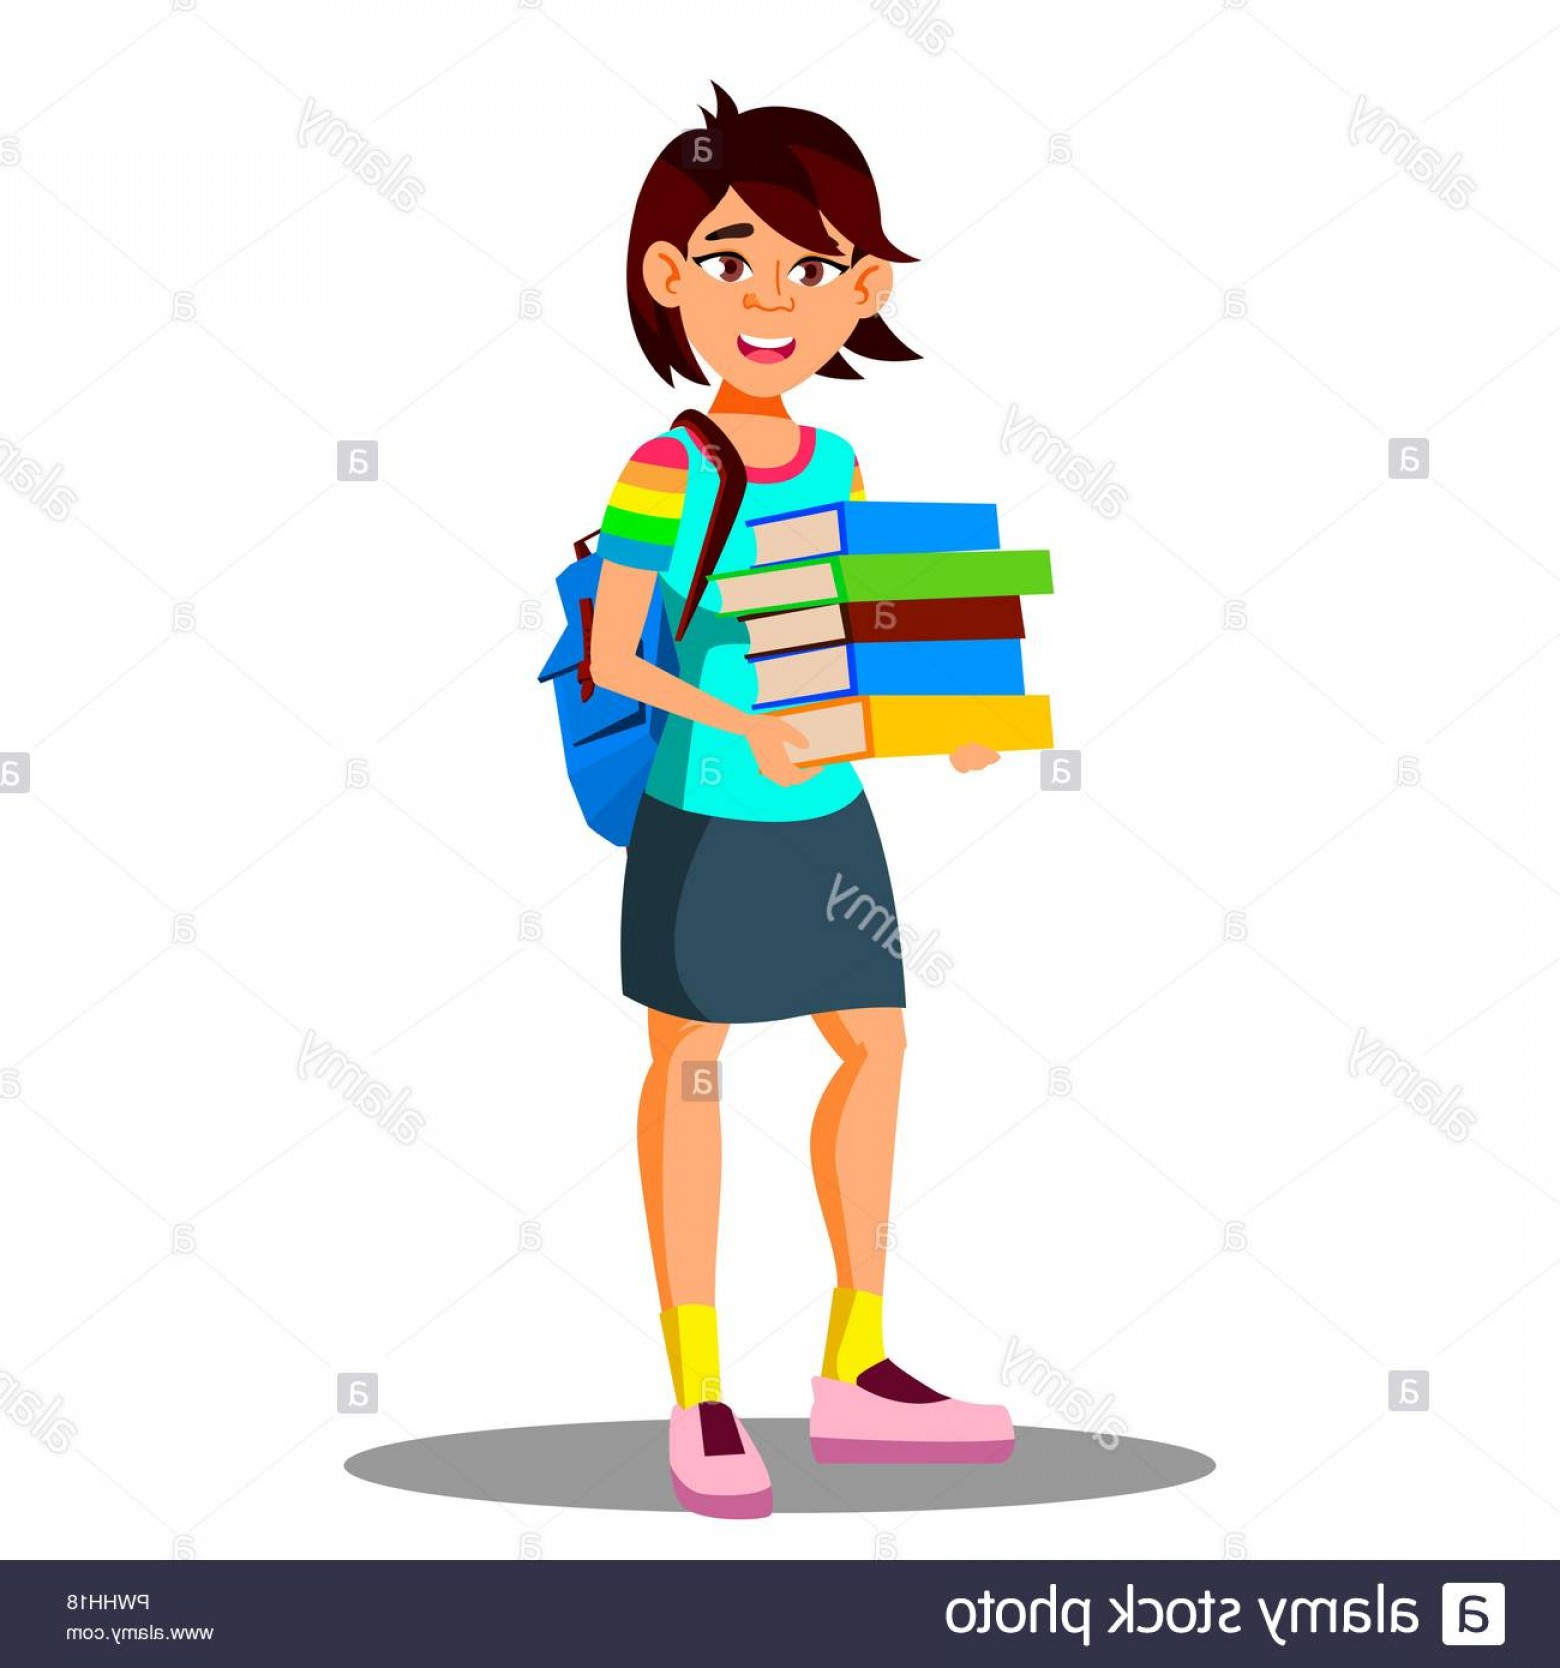 Asian Student Vector: Smiling Asian Girl Student Holding Books In Hand Vector Isolated Illustration Image